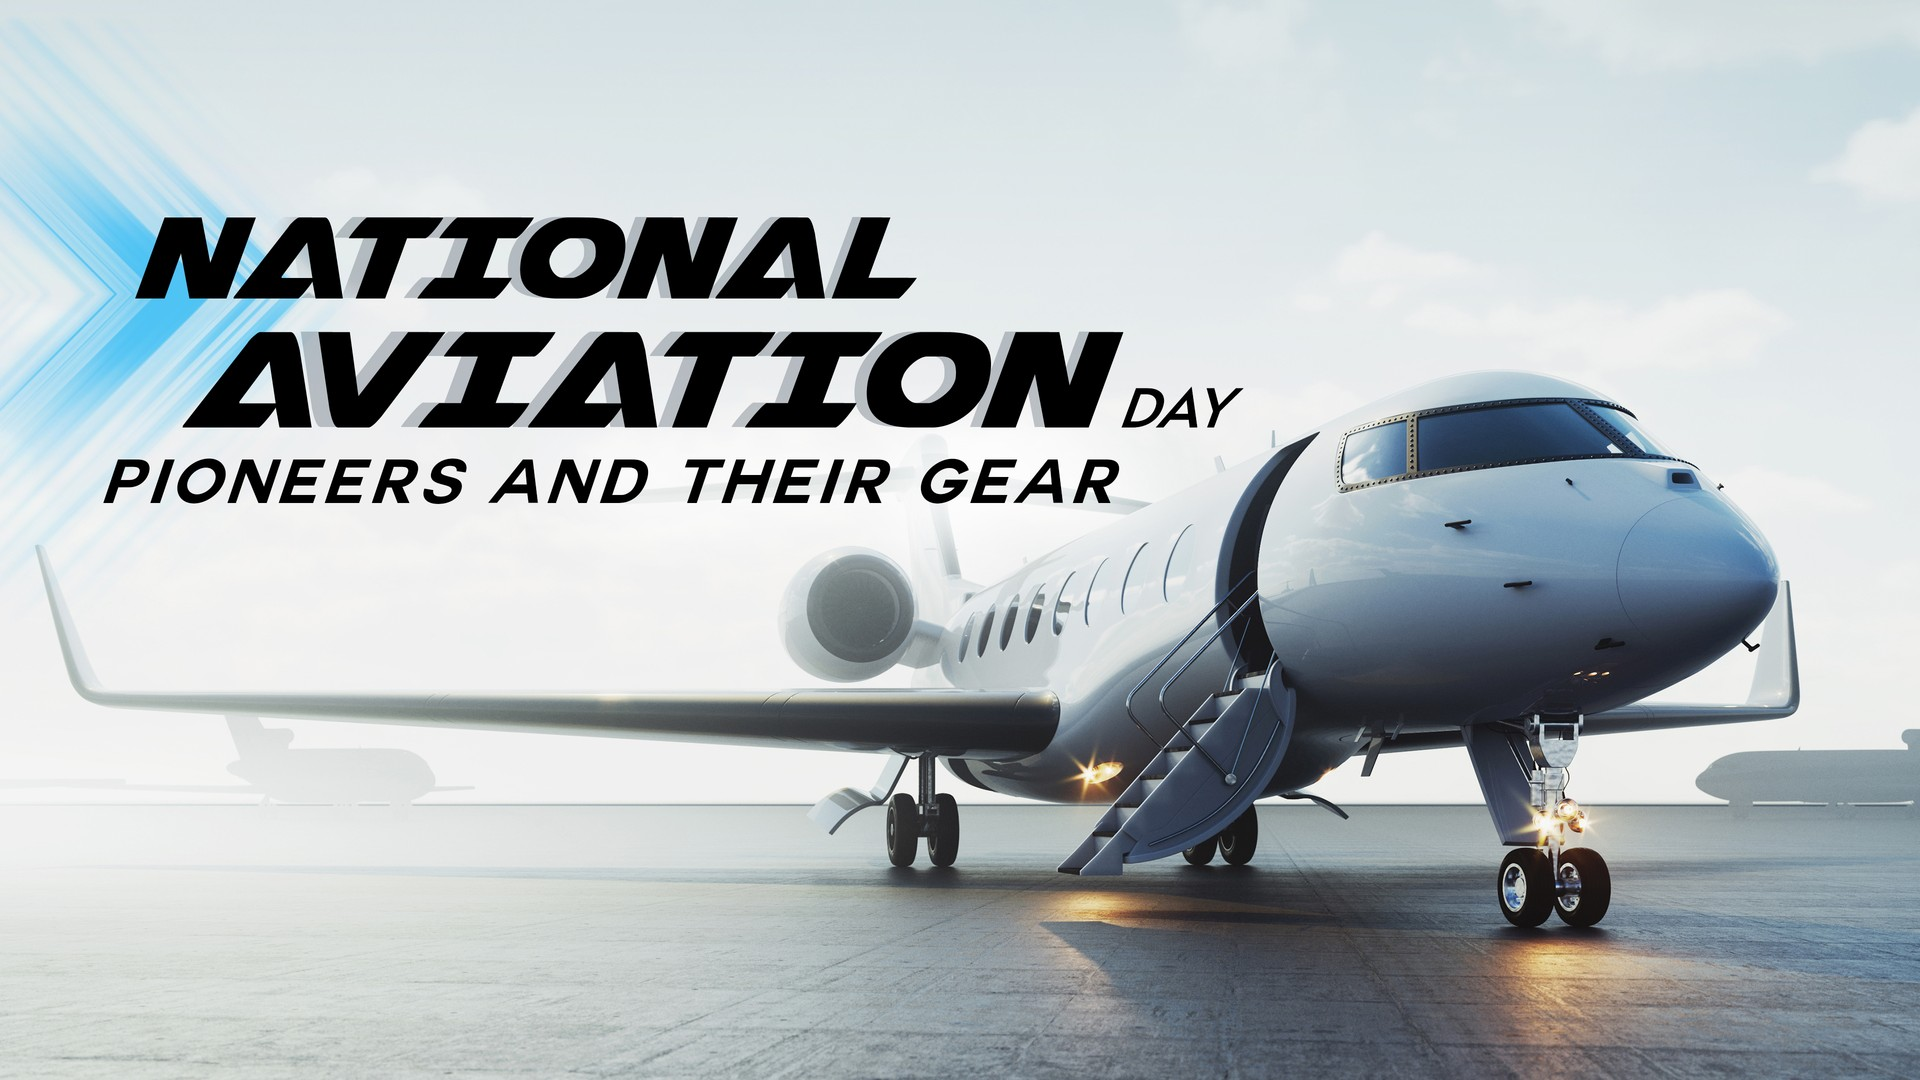 National Aviation Day: The Pioneers and Gear